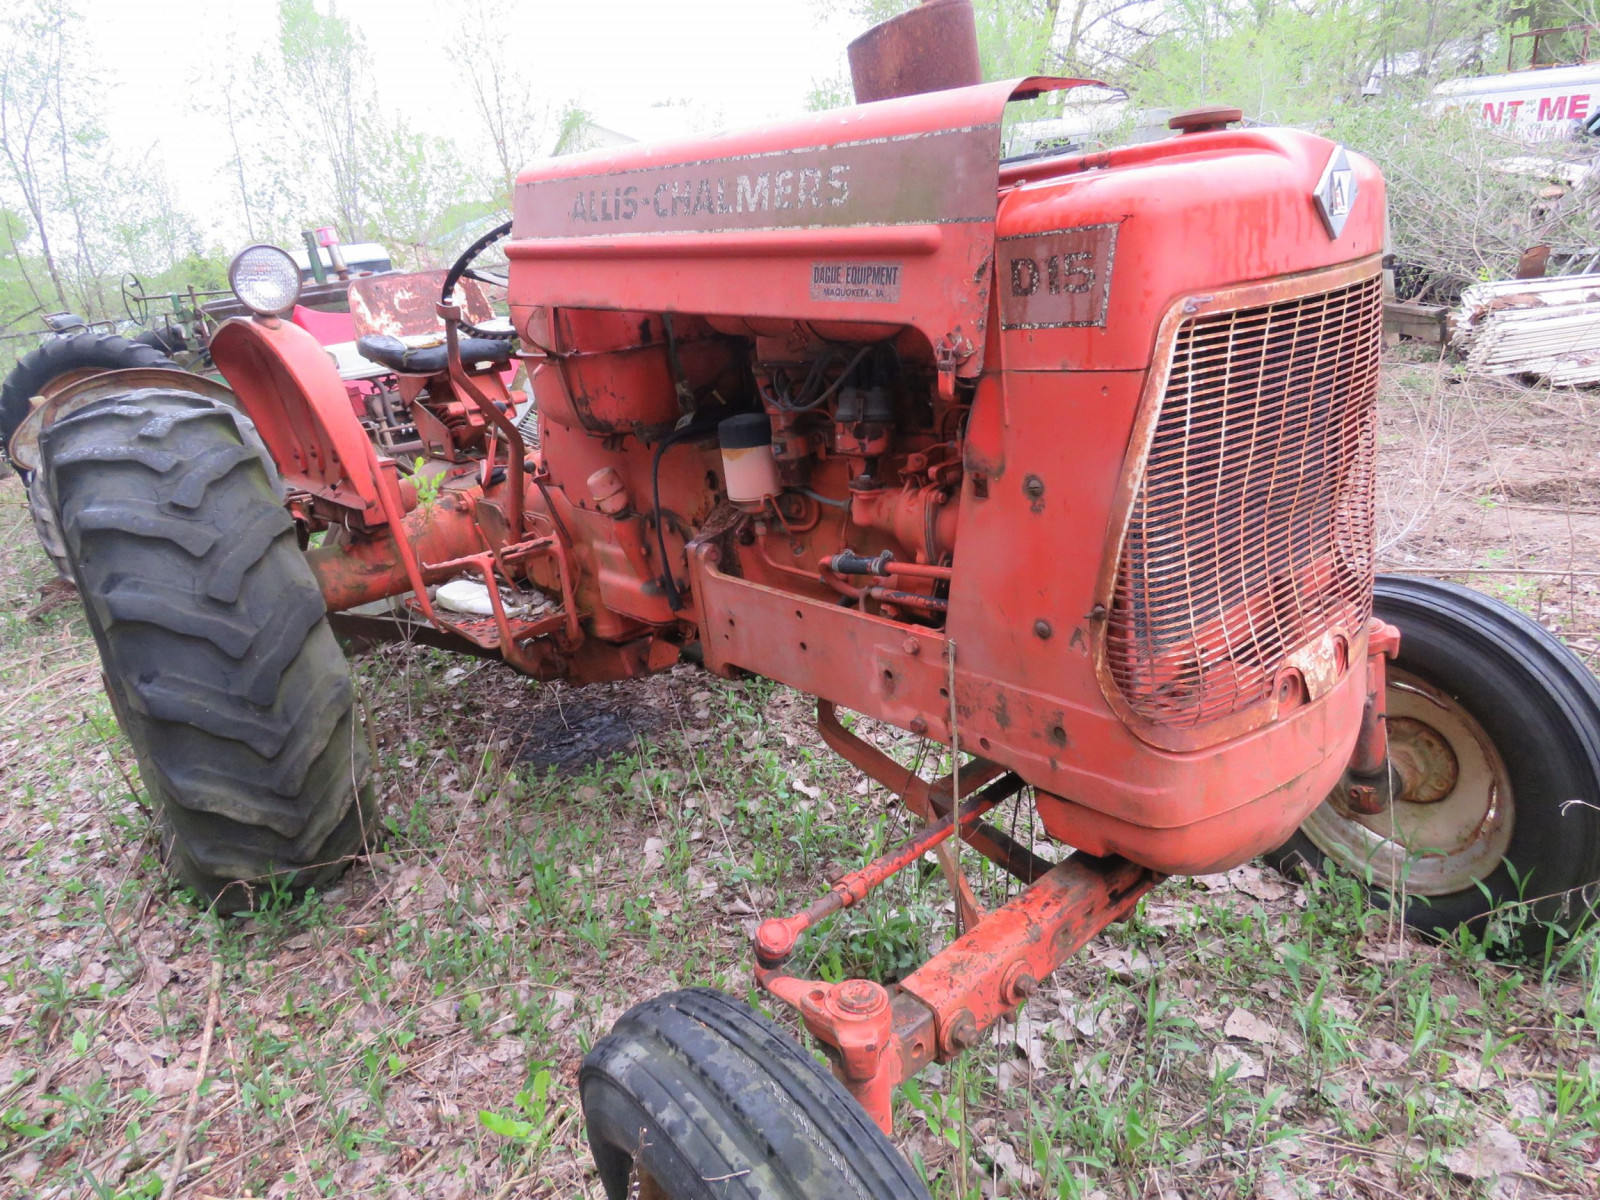 Allis Chalmers D-15 Tractor - Image 2